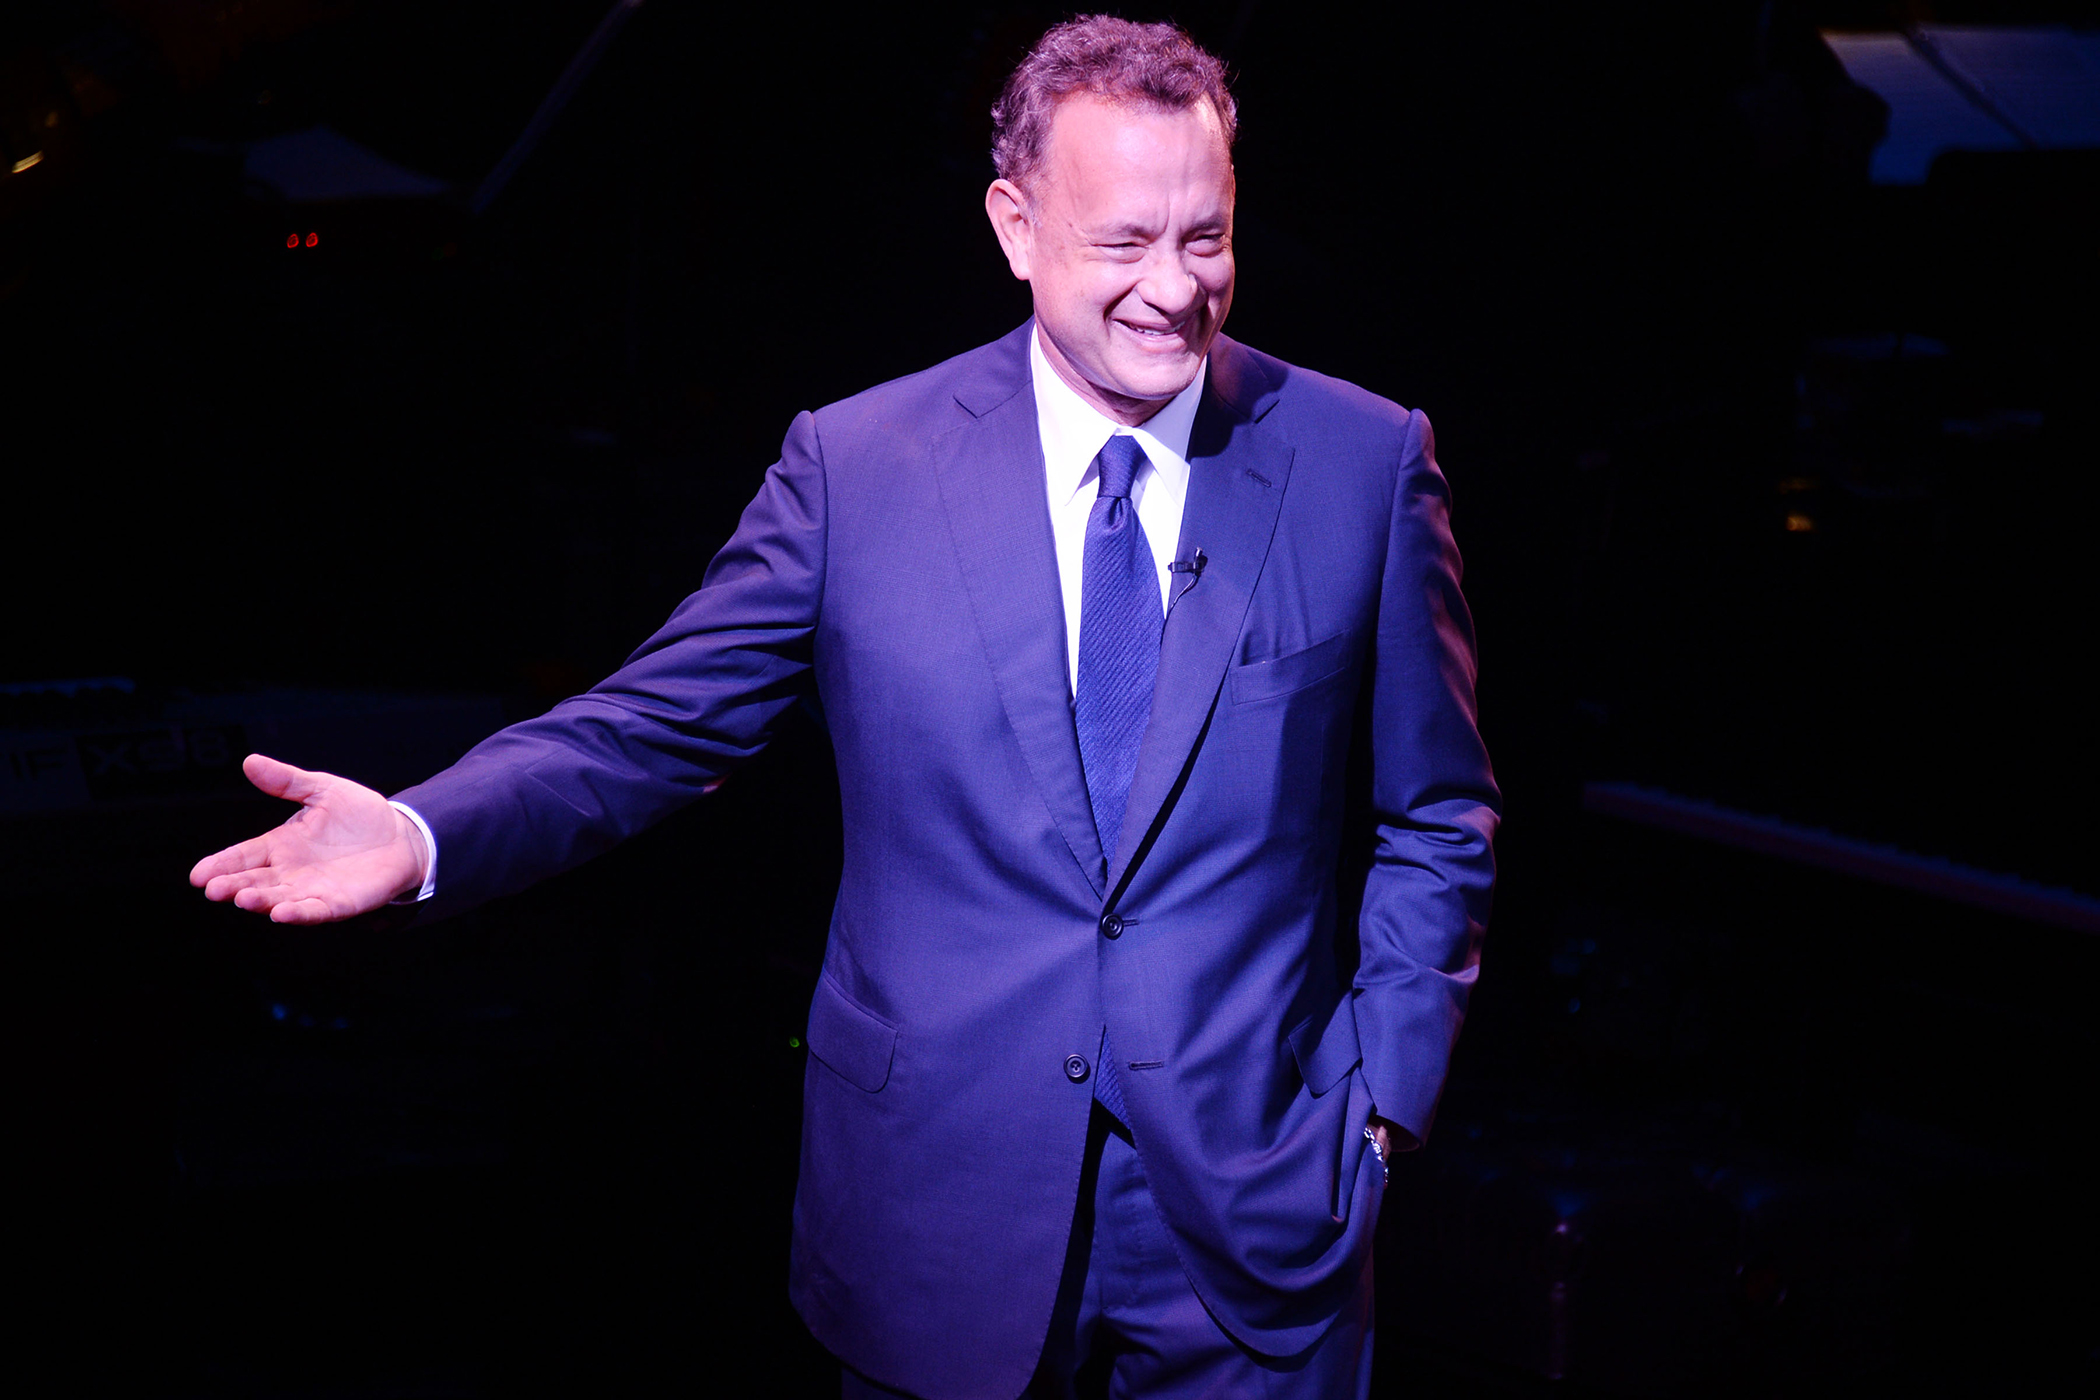 Tom Hanks at SeriousFun Children's Network Celebrates The Legacy Of Paul Newman Held At Avery Fisher Hall, New York City, March 2, 2015.